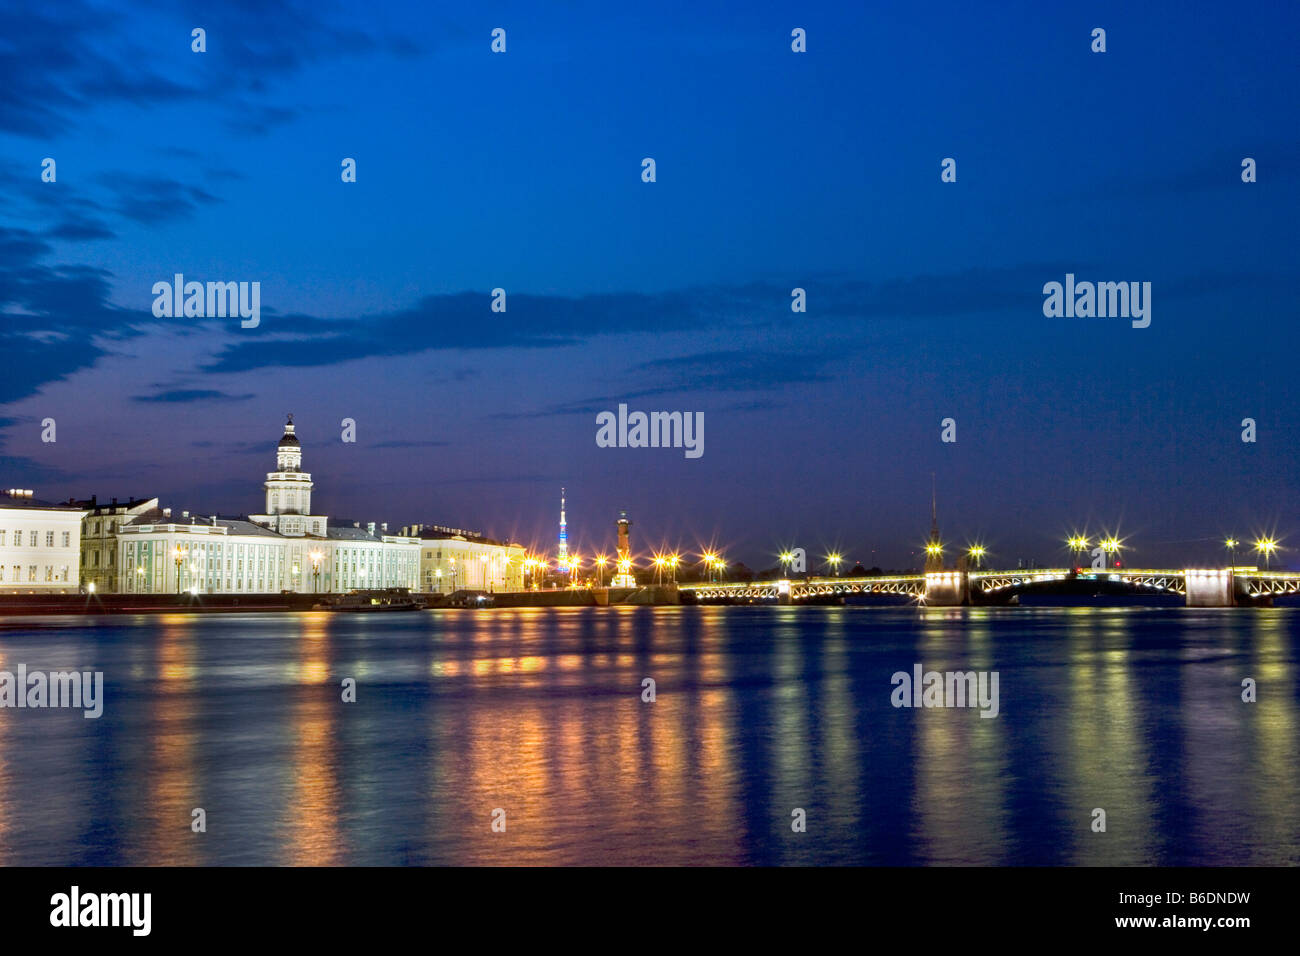 Russia, Saint Petersburg, View on the university at the border of the Neva river. Stock Photo